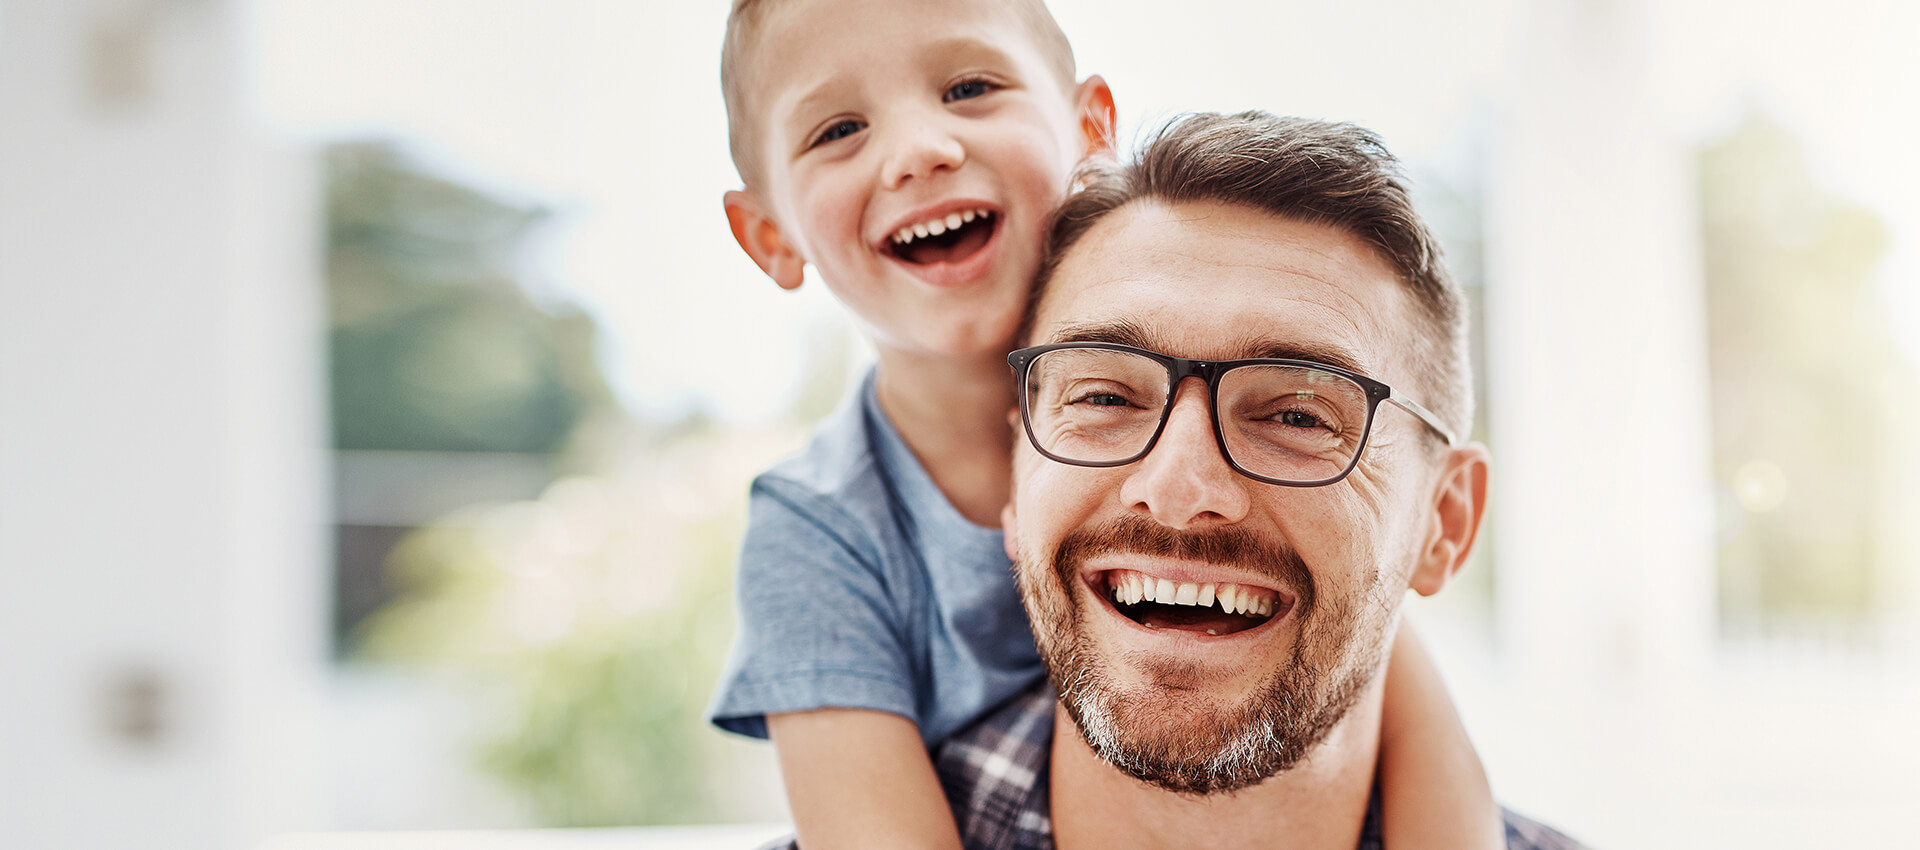 smiling-man-with-son